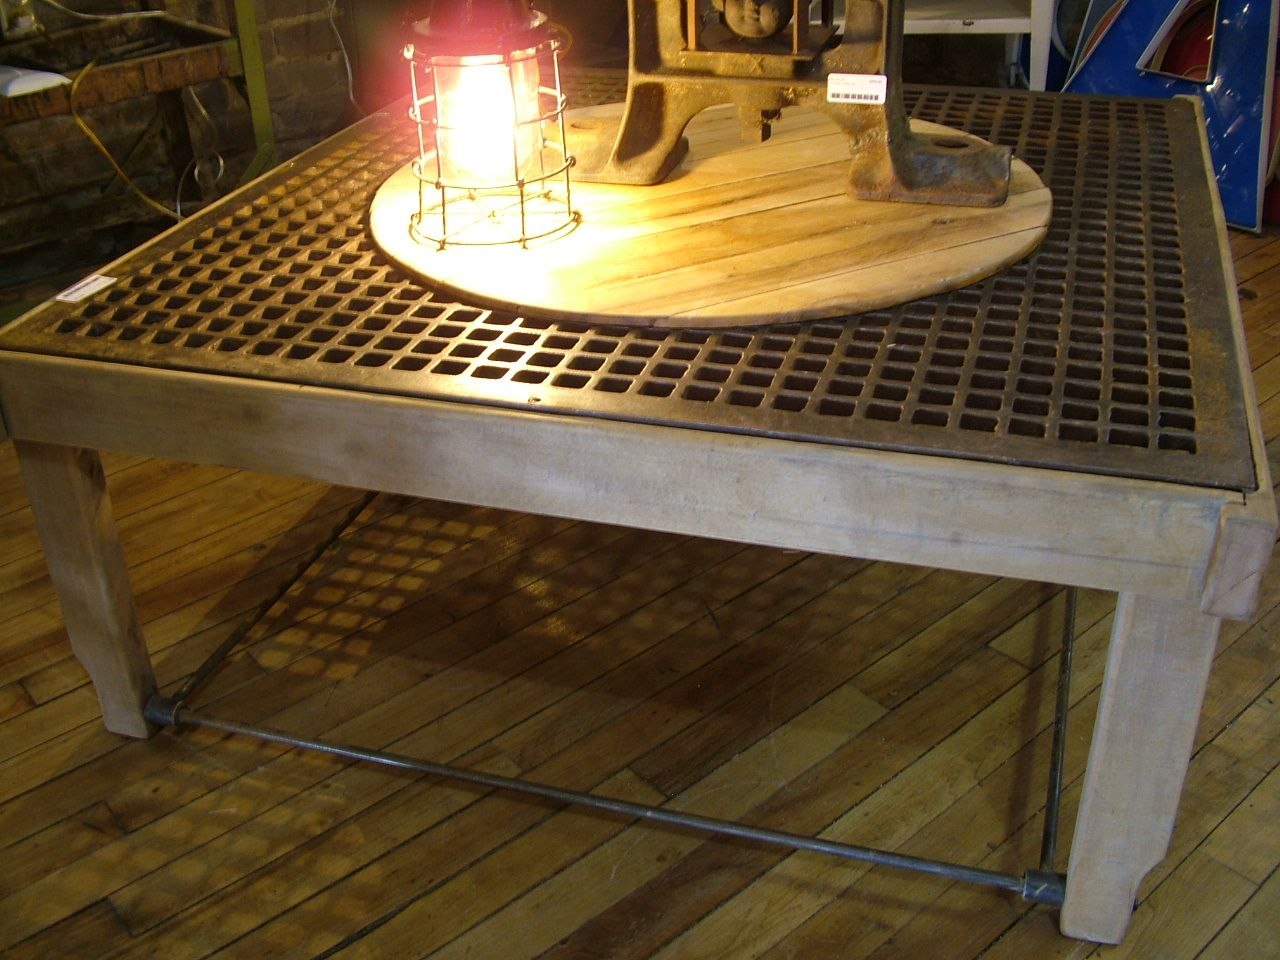 Coffee table made from cast iron floor grate surround.  Vintage